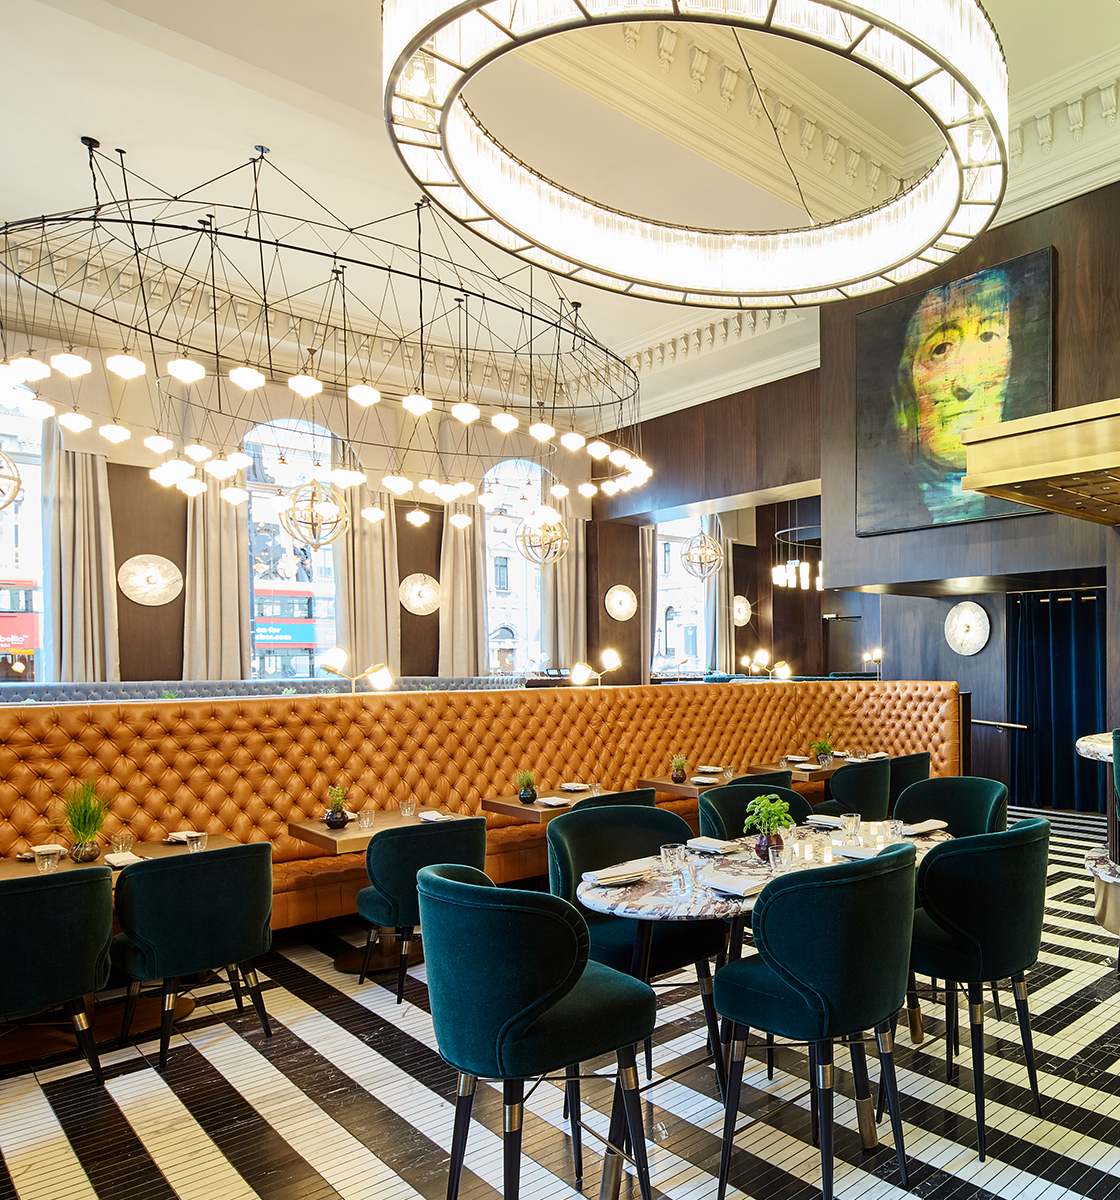 Bespoke toffee banquette in restaurant tall ceilings